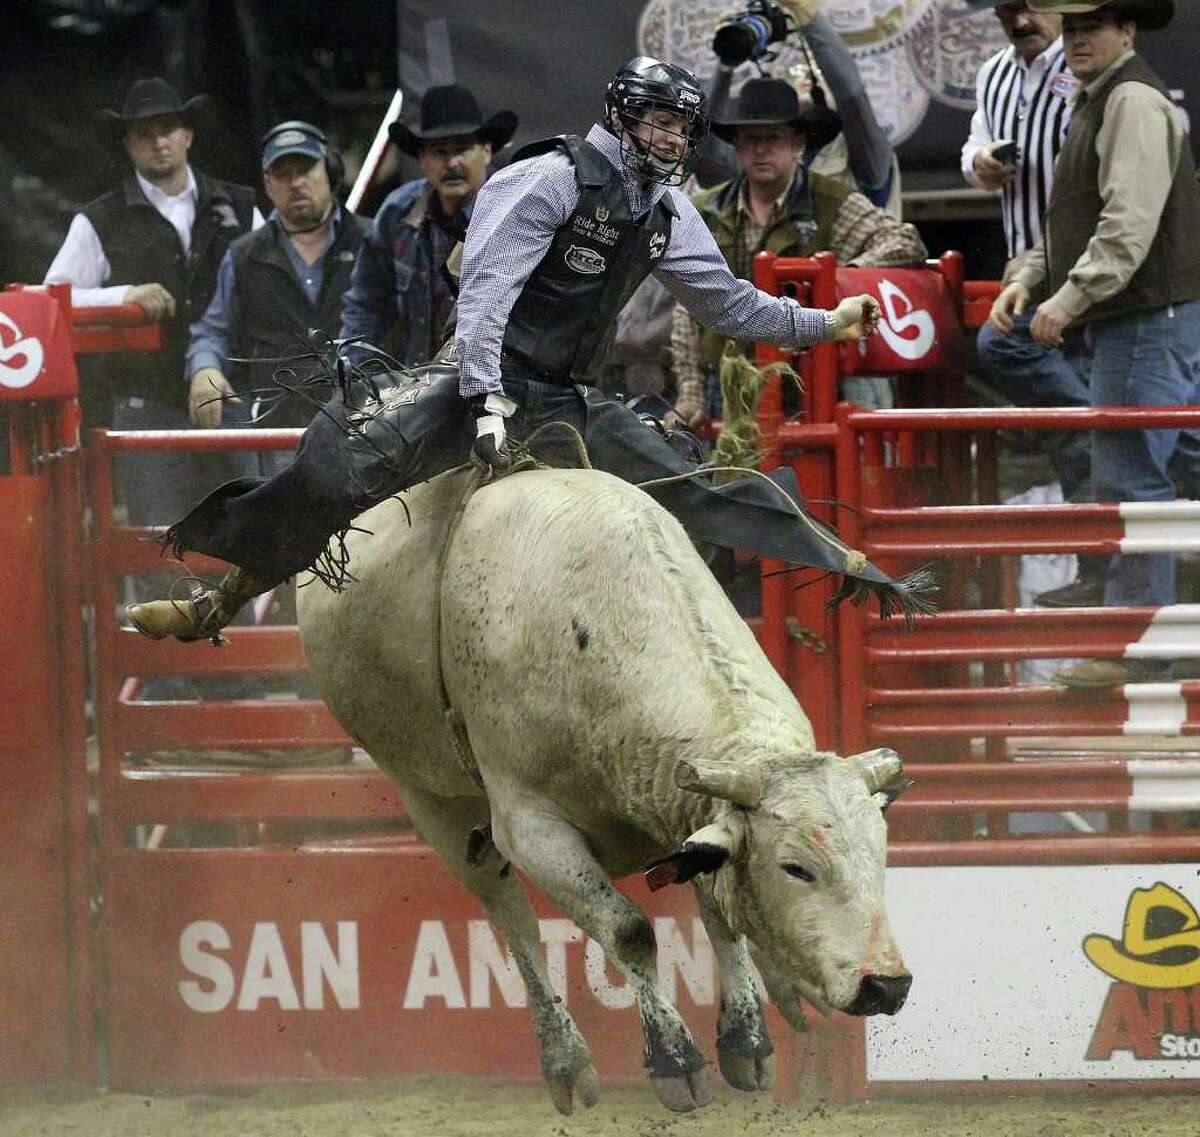 Cody Teel rides Sooner Shaker during the Bull Riding competition at the 2012 San Antonio Stock Show & Rodeo on Friday, Feb. 24, 2012.